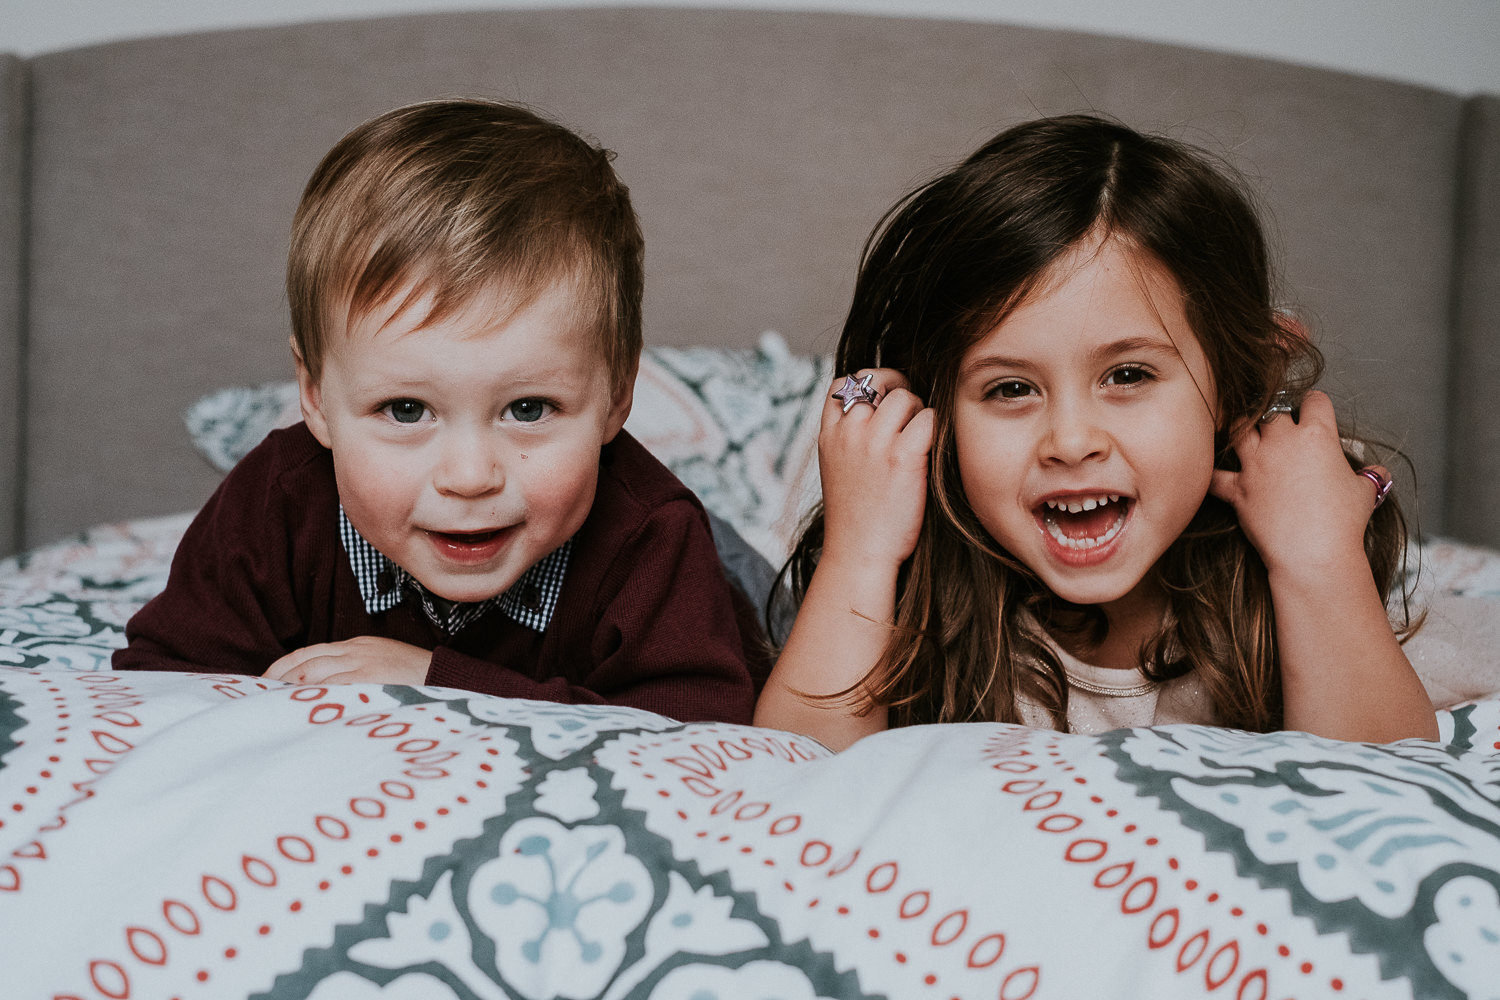 young girl and toddler brother portrait on bed laughing